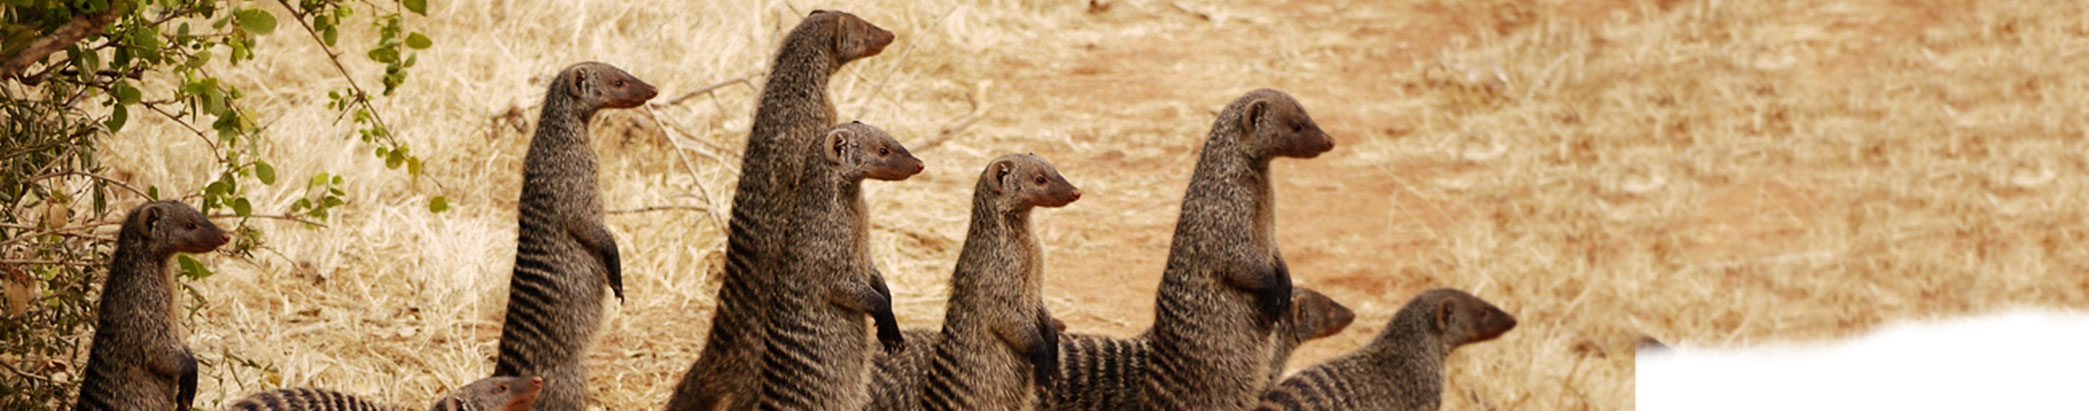 Group of Mongooses